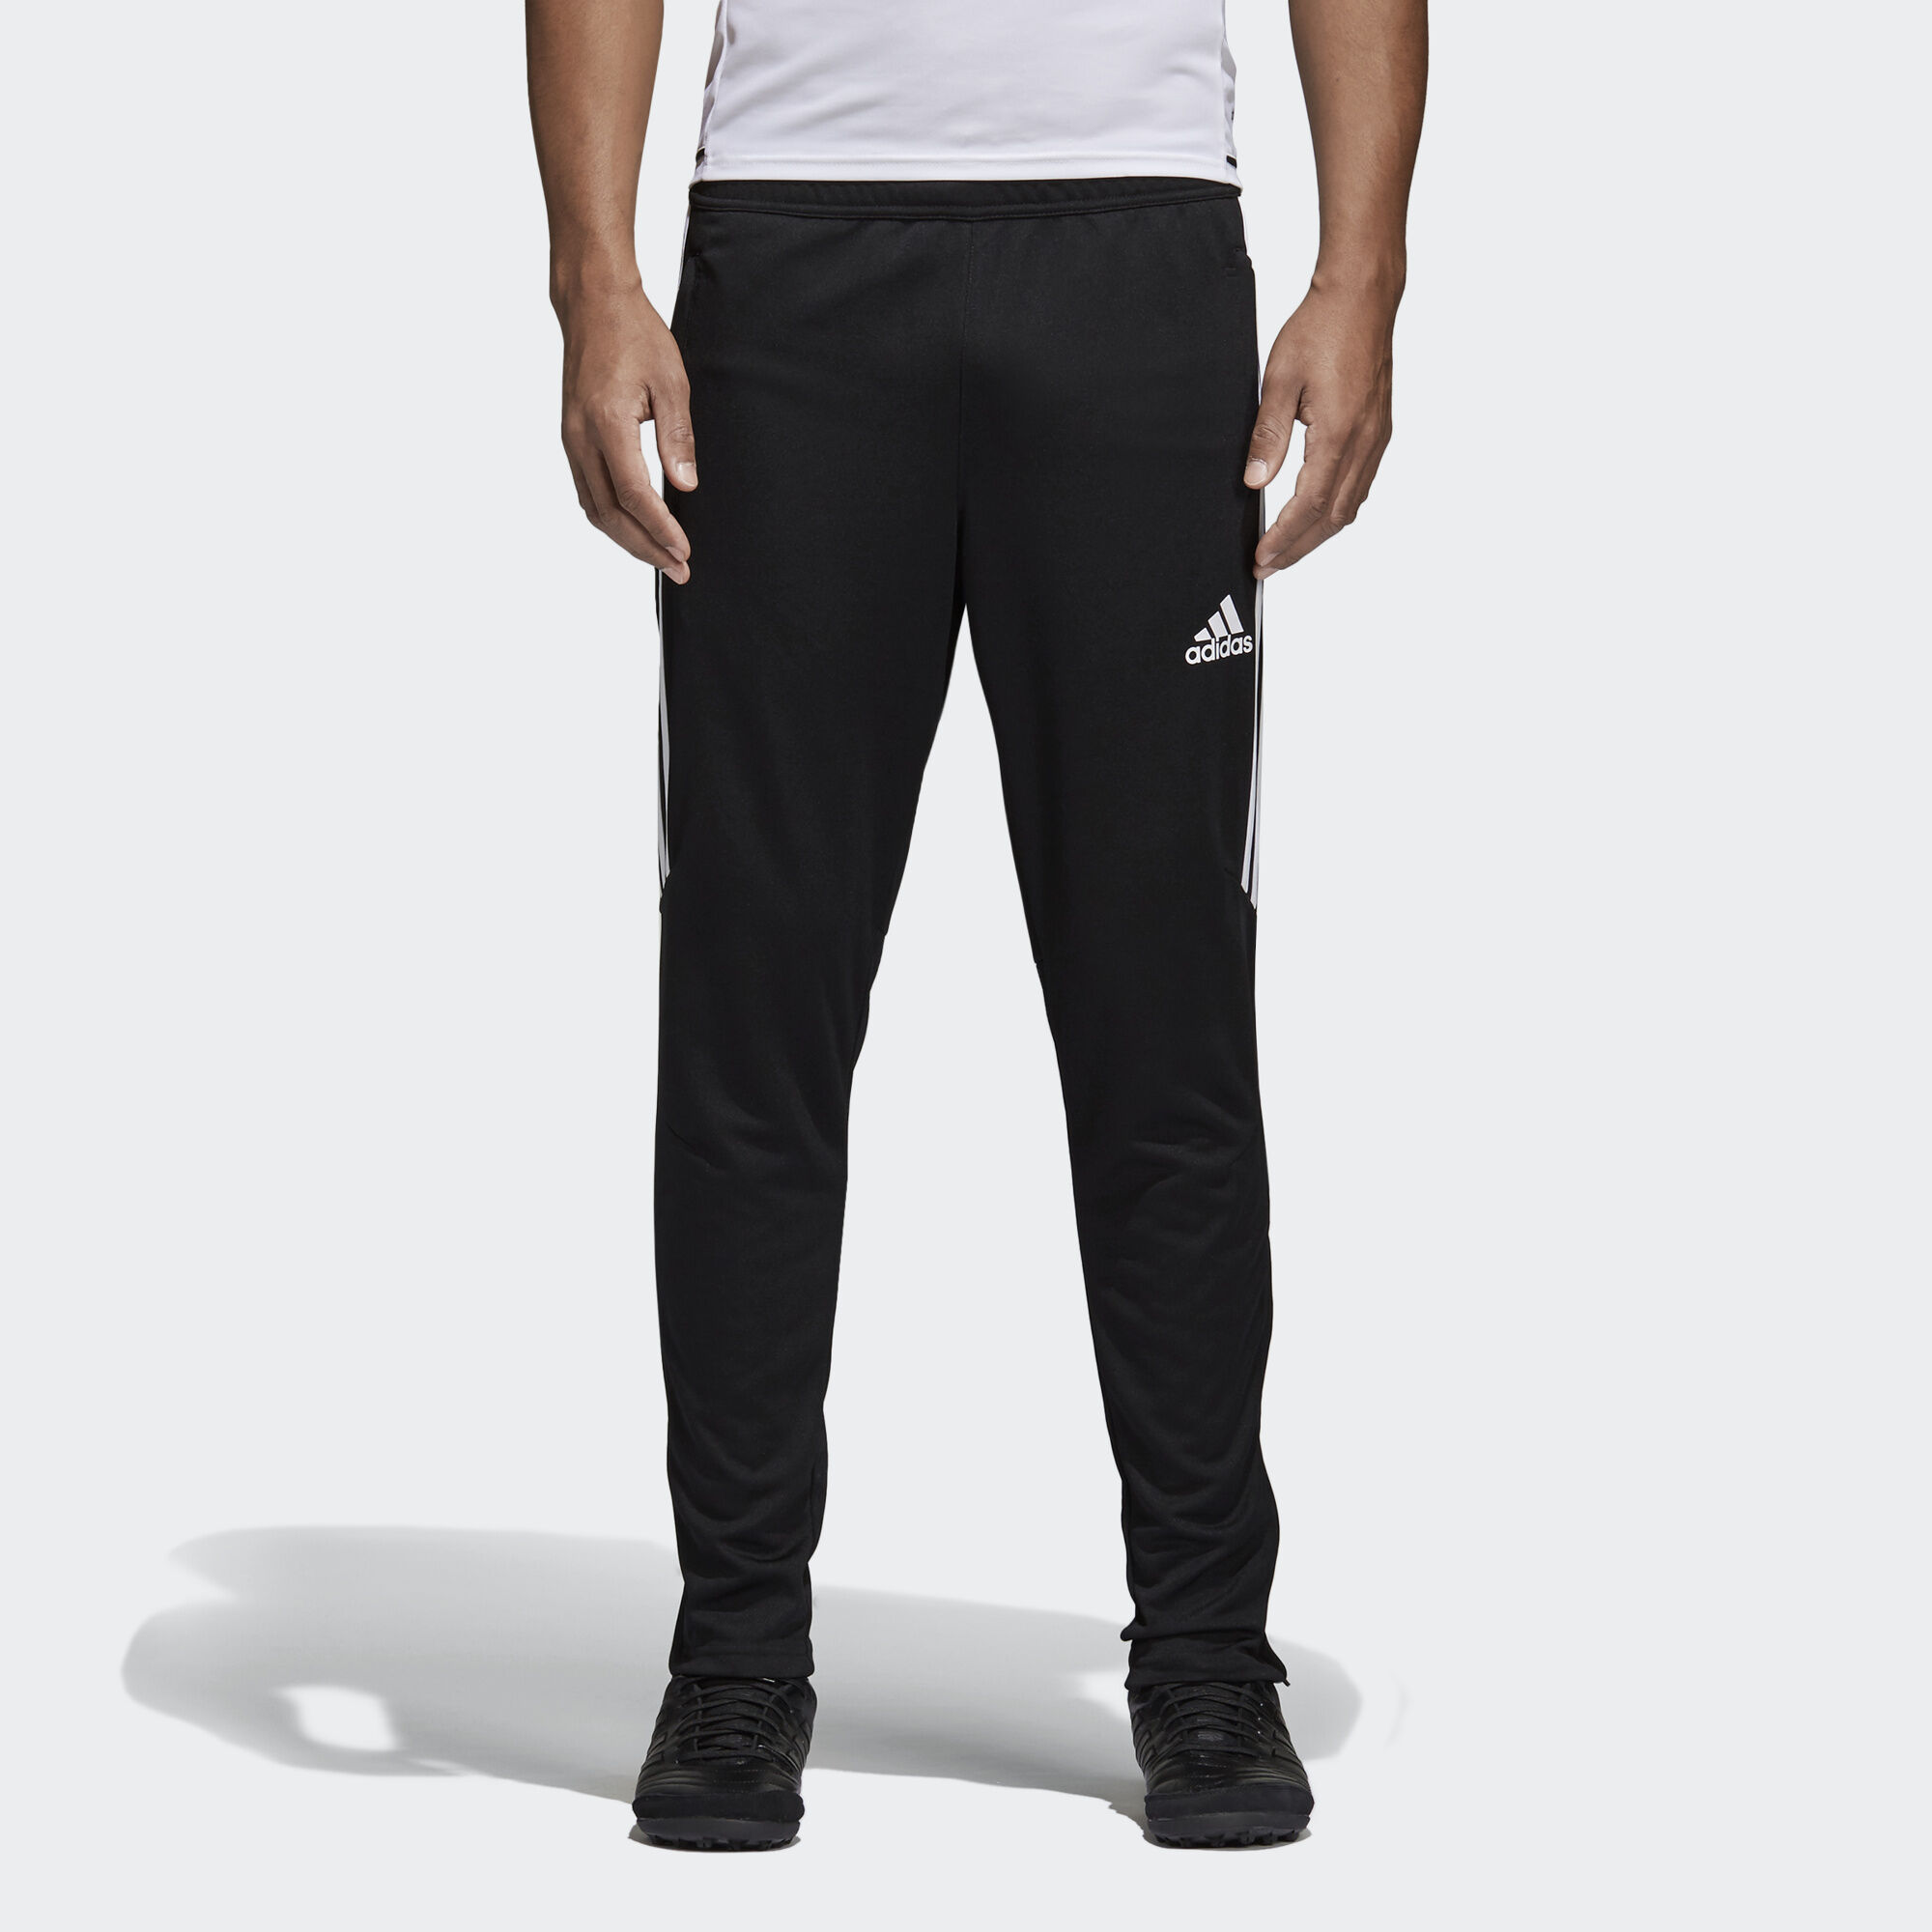 adidas slim track pants men